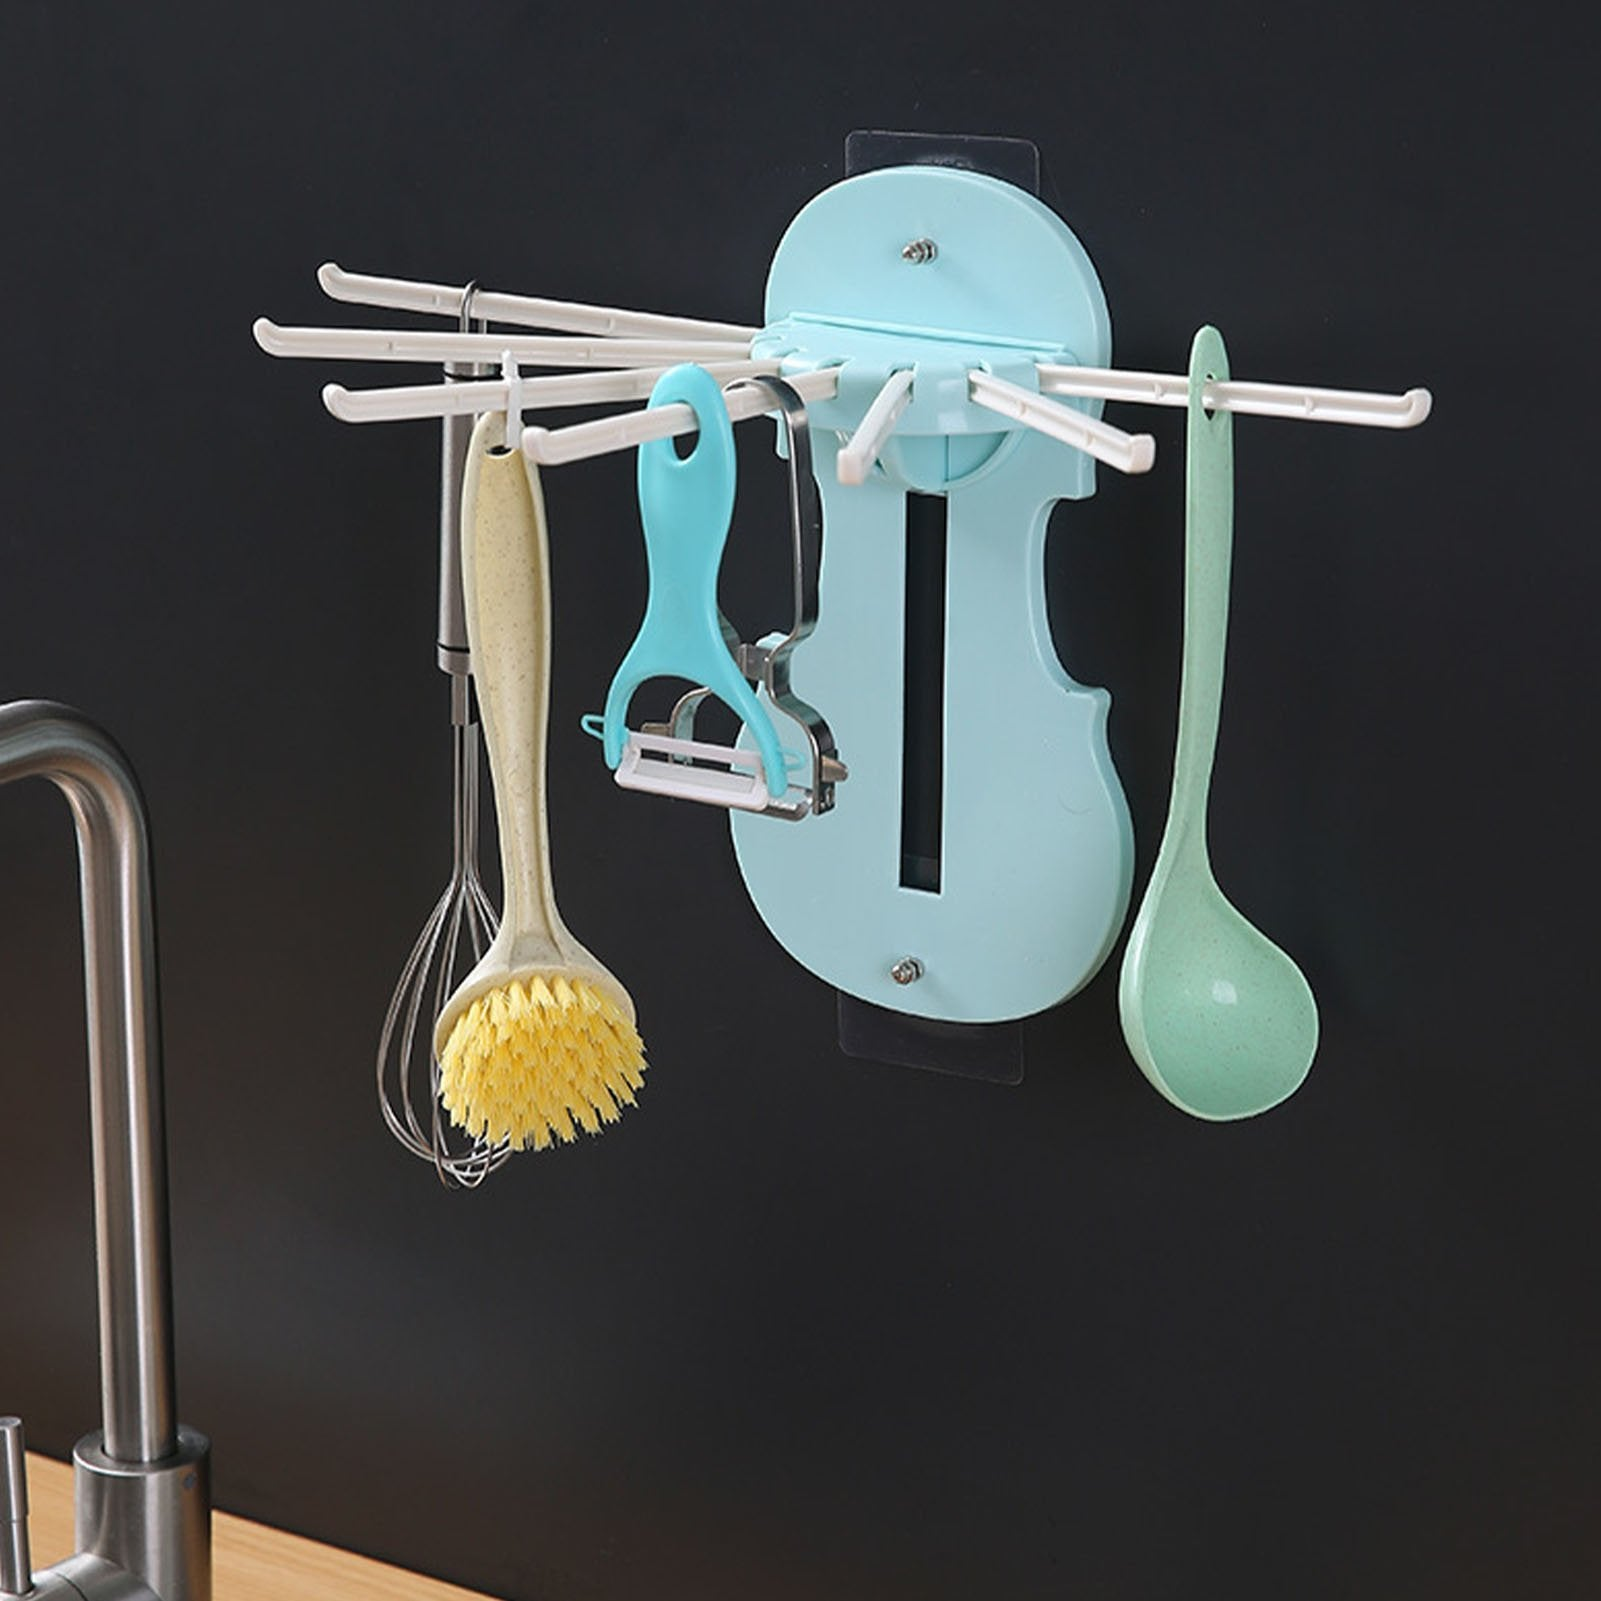 Assistant 7-in-1 pull out hanger